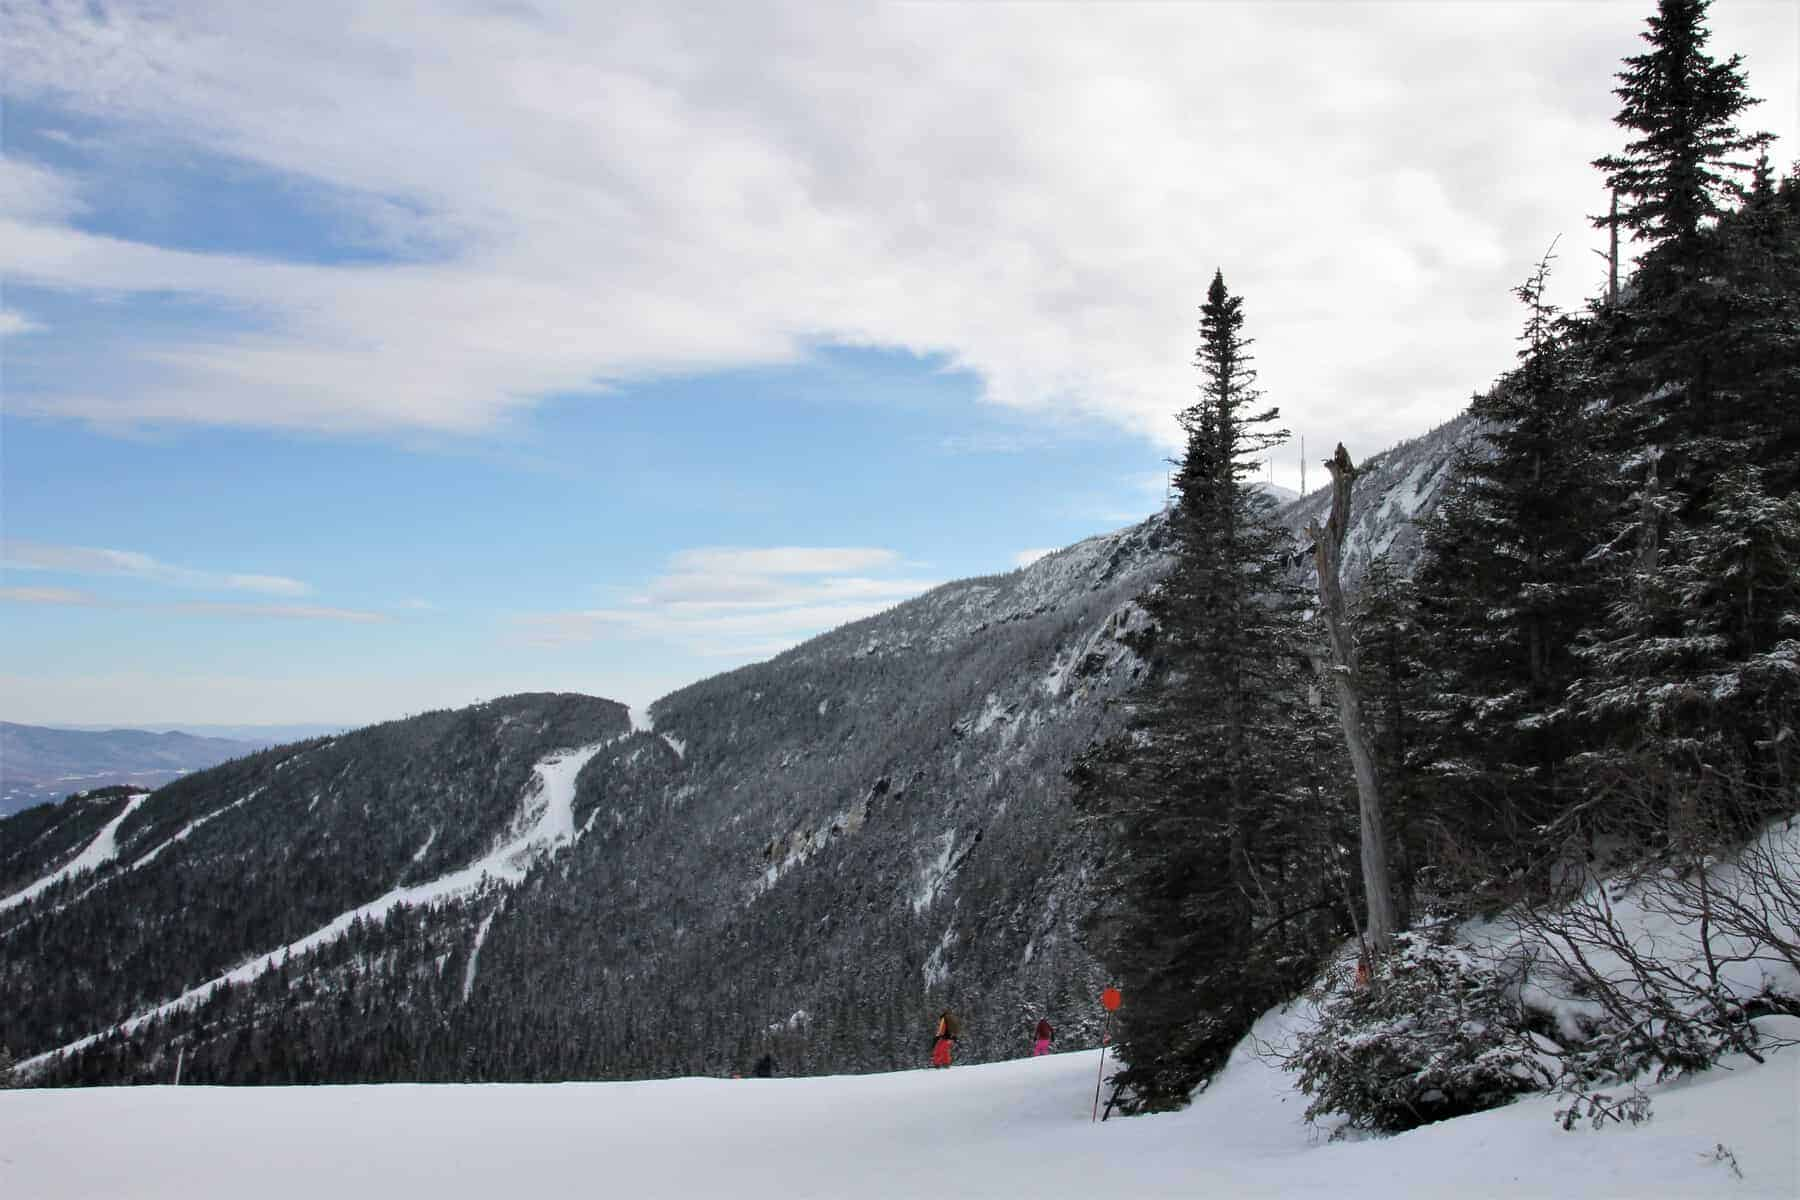 One of the best Vermont ski resorts, Stowe Ski Resort in Vermont